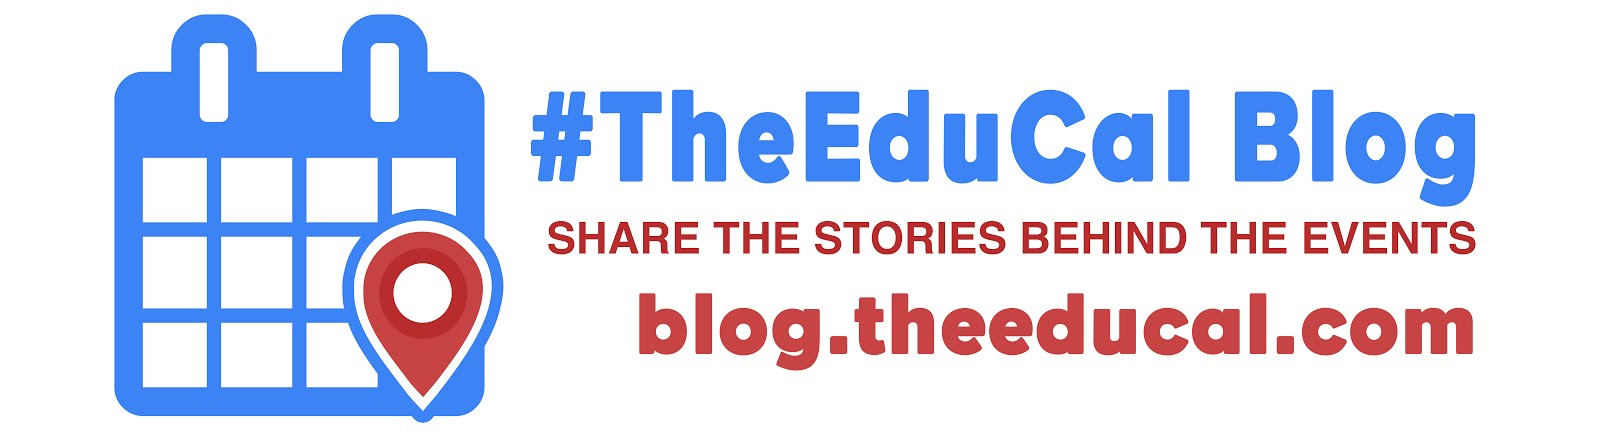 The Education Calendar Blog